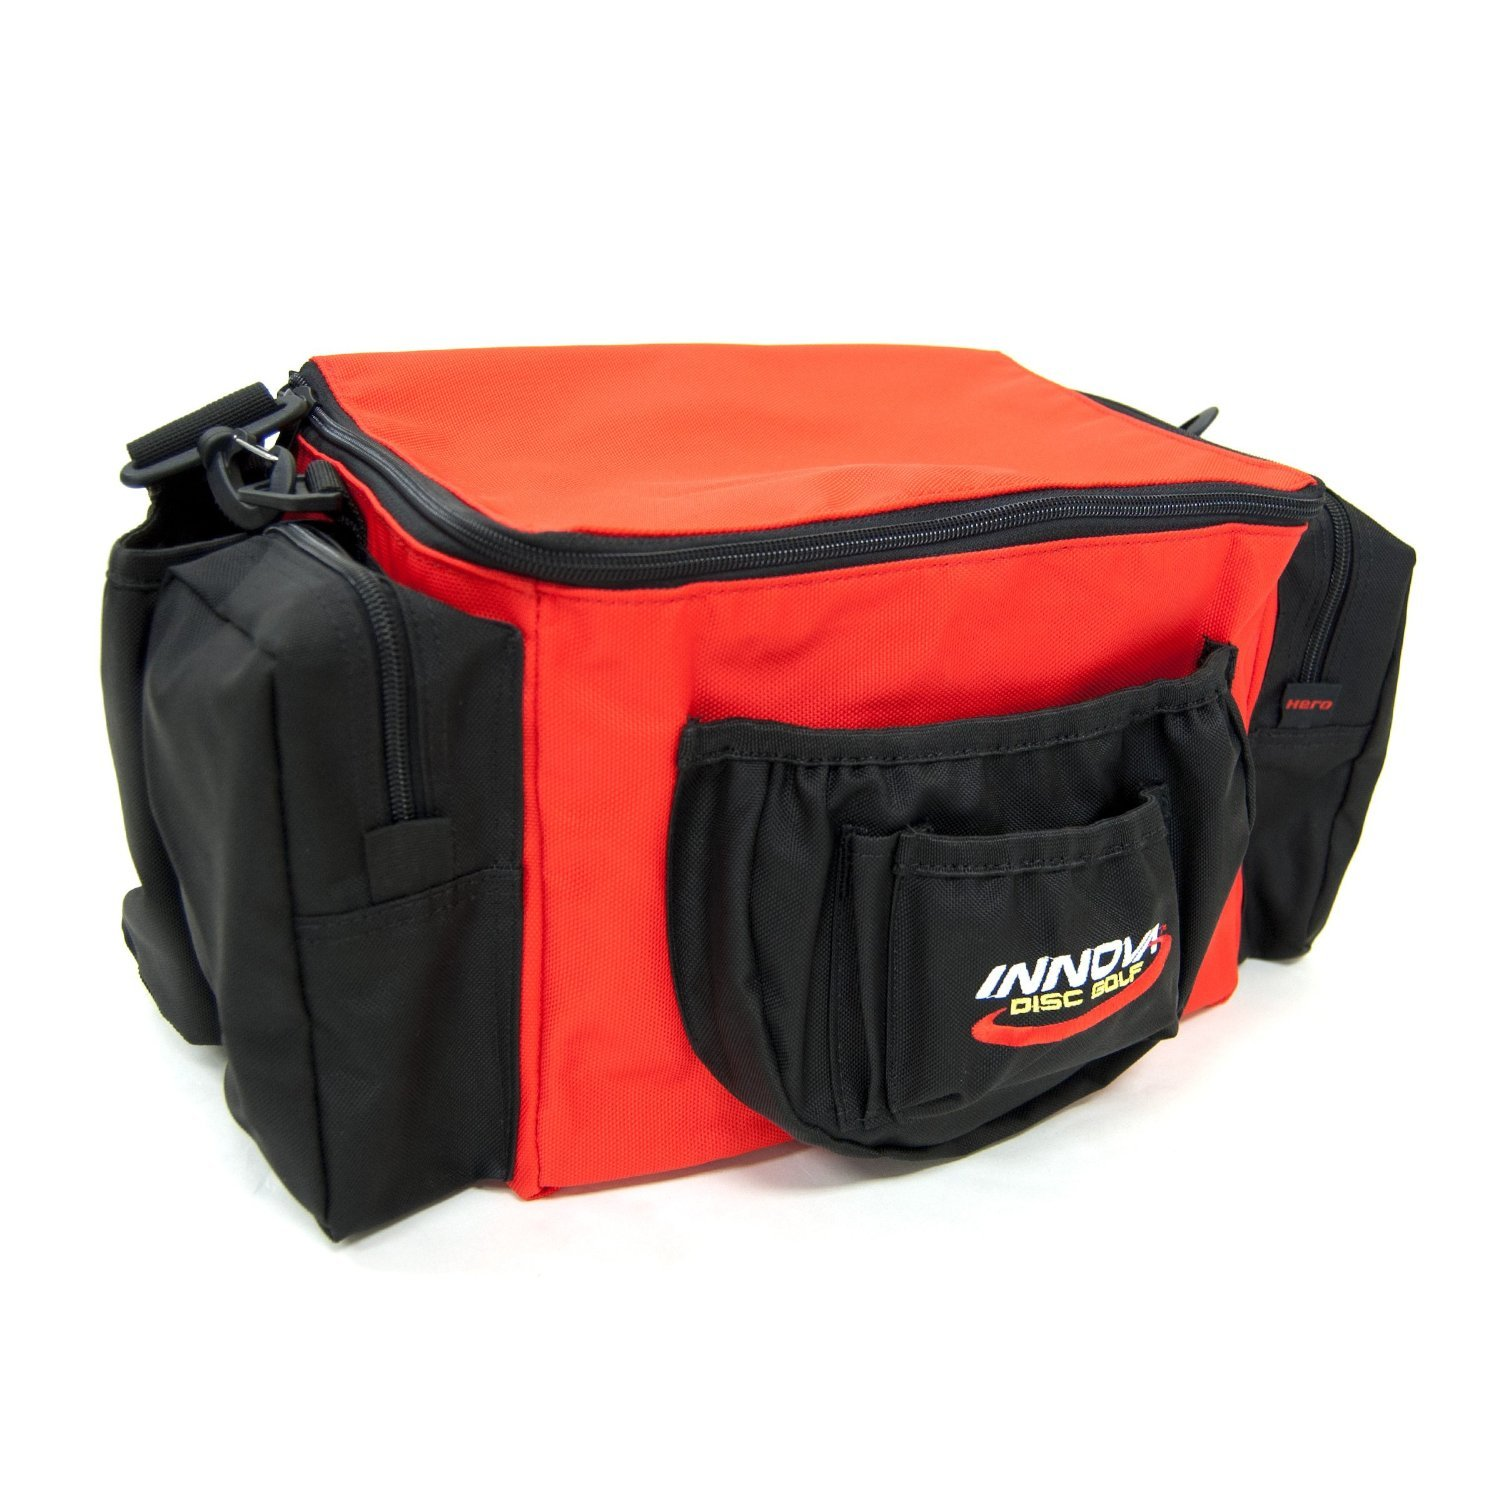 Innova Competition Disc Golf Bag - Red